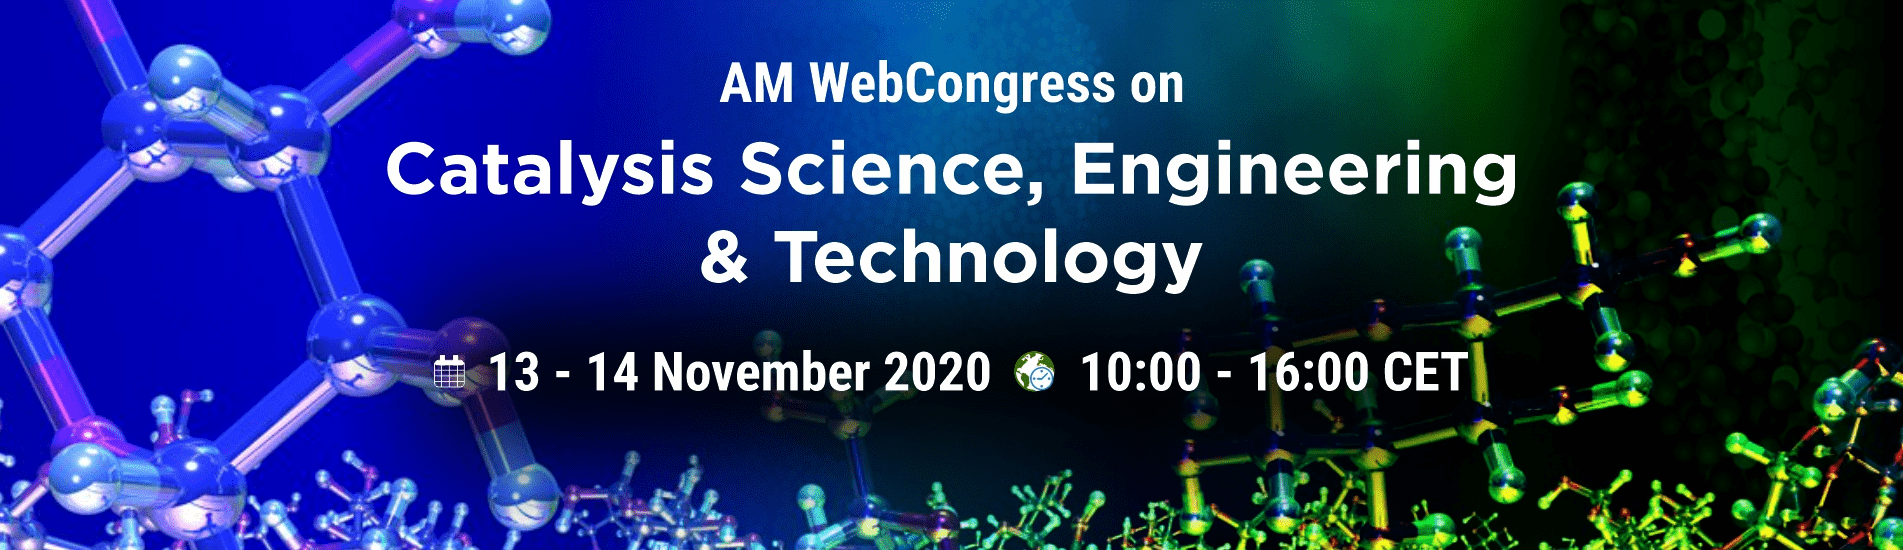 WebCongress on catalysis science, engineering, and technology | AMWeb | IAAM